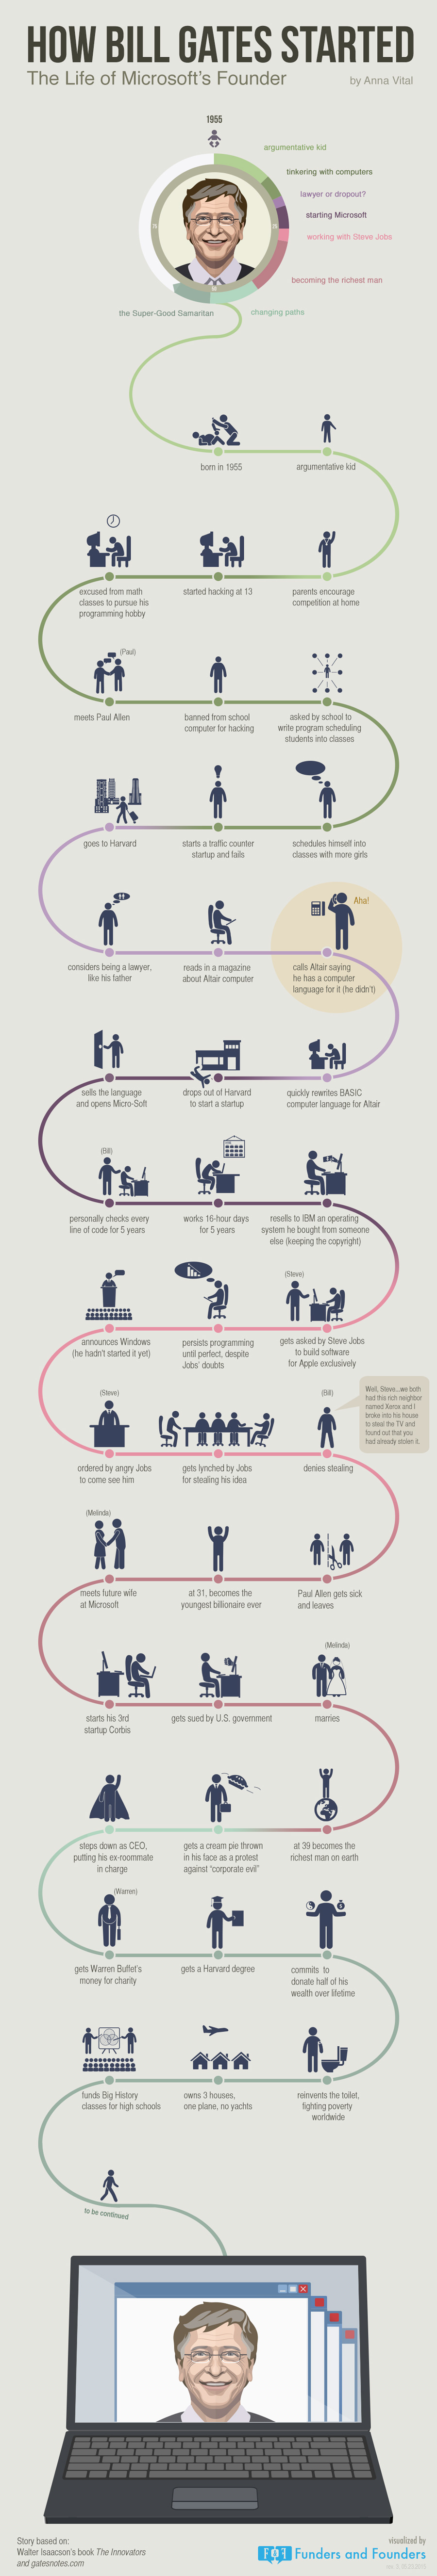 How Bill Gates Started – Infographic